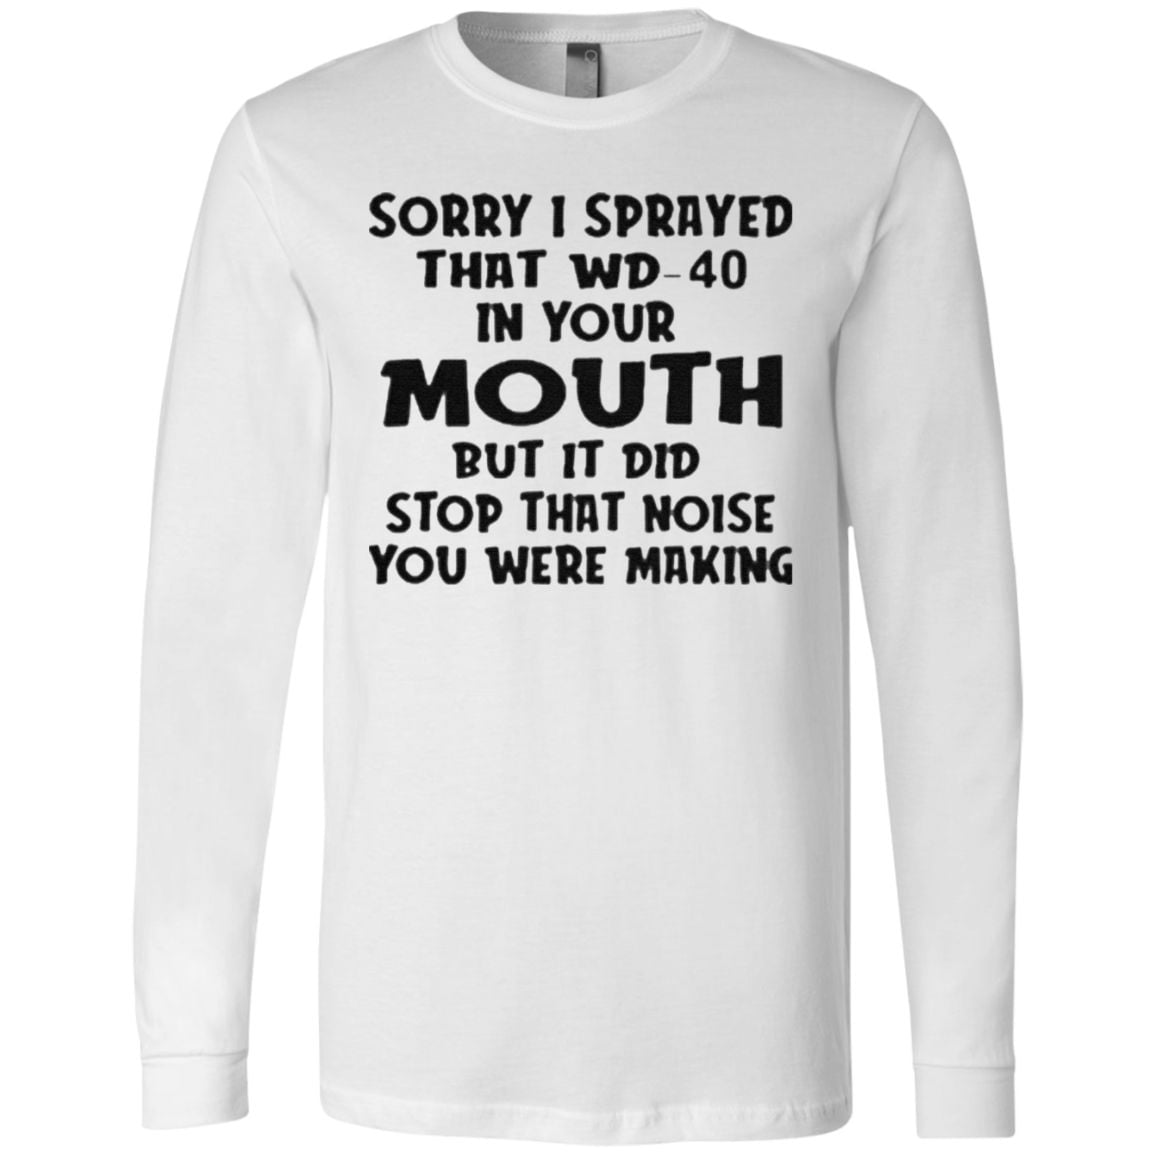 Sorry I sprayed that Wd 40 in your Mouth but it did stop that noise You were making t shirt